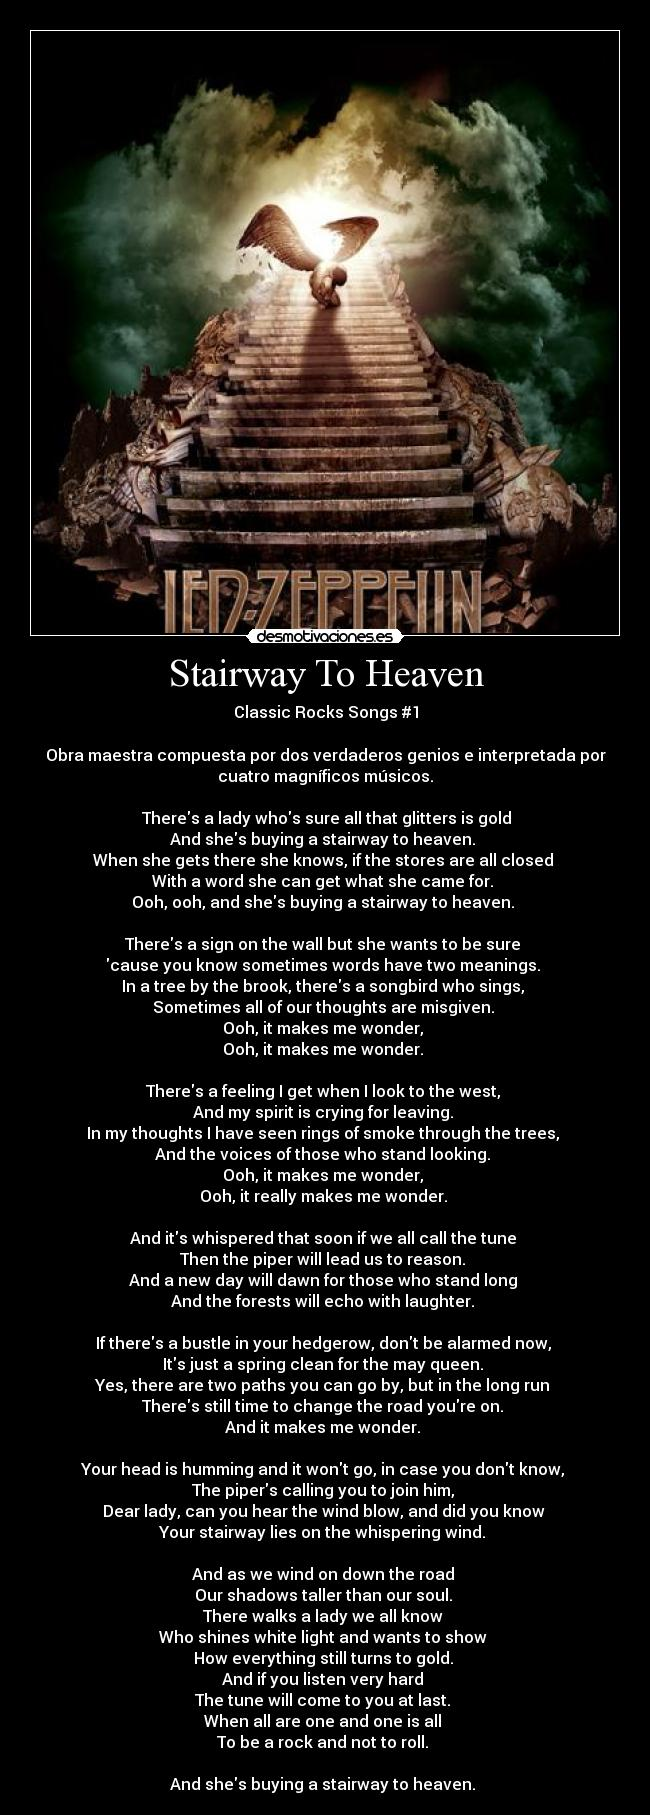 Stairway To Heaven - Classic Rocks Songs #1  Obra maestra compuesta por dos verdaderos genios e interpretada por cuatro magníficos músicos.  ♪♫Theres a lady whos sure all that glitters is gold  And shes buying a stairway to heaven.  When she gets there she knows, if the stores are all closed  With a word she can get what she came for.  Ooh, ooh, and shes buying a stairway to heaven.   Theres a sign on the wall but she wants to be sure  cause you know sometimes words have two meanings.  In a tree by the brook, theres a songbird who sings,  Sometimes all of our thoughts are misgiven.  Ooh, it makes me wonder,  Ooh, it makes me wonder.   Theres a feeling I get when I look to the west,  And my spirit is crying for leaving.  In my thoughts I have seen rings of smoke through the trees,  And the voices of those who stand looking.  Ooh, it makes me wonder,  Ooh, it really makes me wonder.   And its whispered that soon if we all call the tune  Then the piper will lead us to reason.  And a new day will dawn for those who stand long  And the forests will echo with laughter.   If theres a bustle in your hedgerow, dont be alarmed now,  Its just a spring clean for the may queen.  Yes, there are two paths you can go by, but in the long run  Theres still time to change the road youre on.  And it makes me wonder.   Your head is humming and it wont go, in case you dont know,  The pipers calling you to join him,  Dear lady, can you hear the wind blow, and did you know  Your stairway lies on the whispering wind.   And as we wind on down the road  Our shadows taller than our soul.  There walks a lady we all know  Who shines white light and wants to show  How everything still turns to gold.  And if you listen very hard  The tune will come to you at last.  When all are one and one is all  To be a rock and not to roll.   And shes buying a stairway to heaven.♪♫